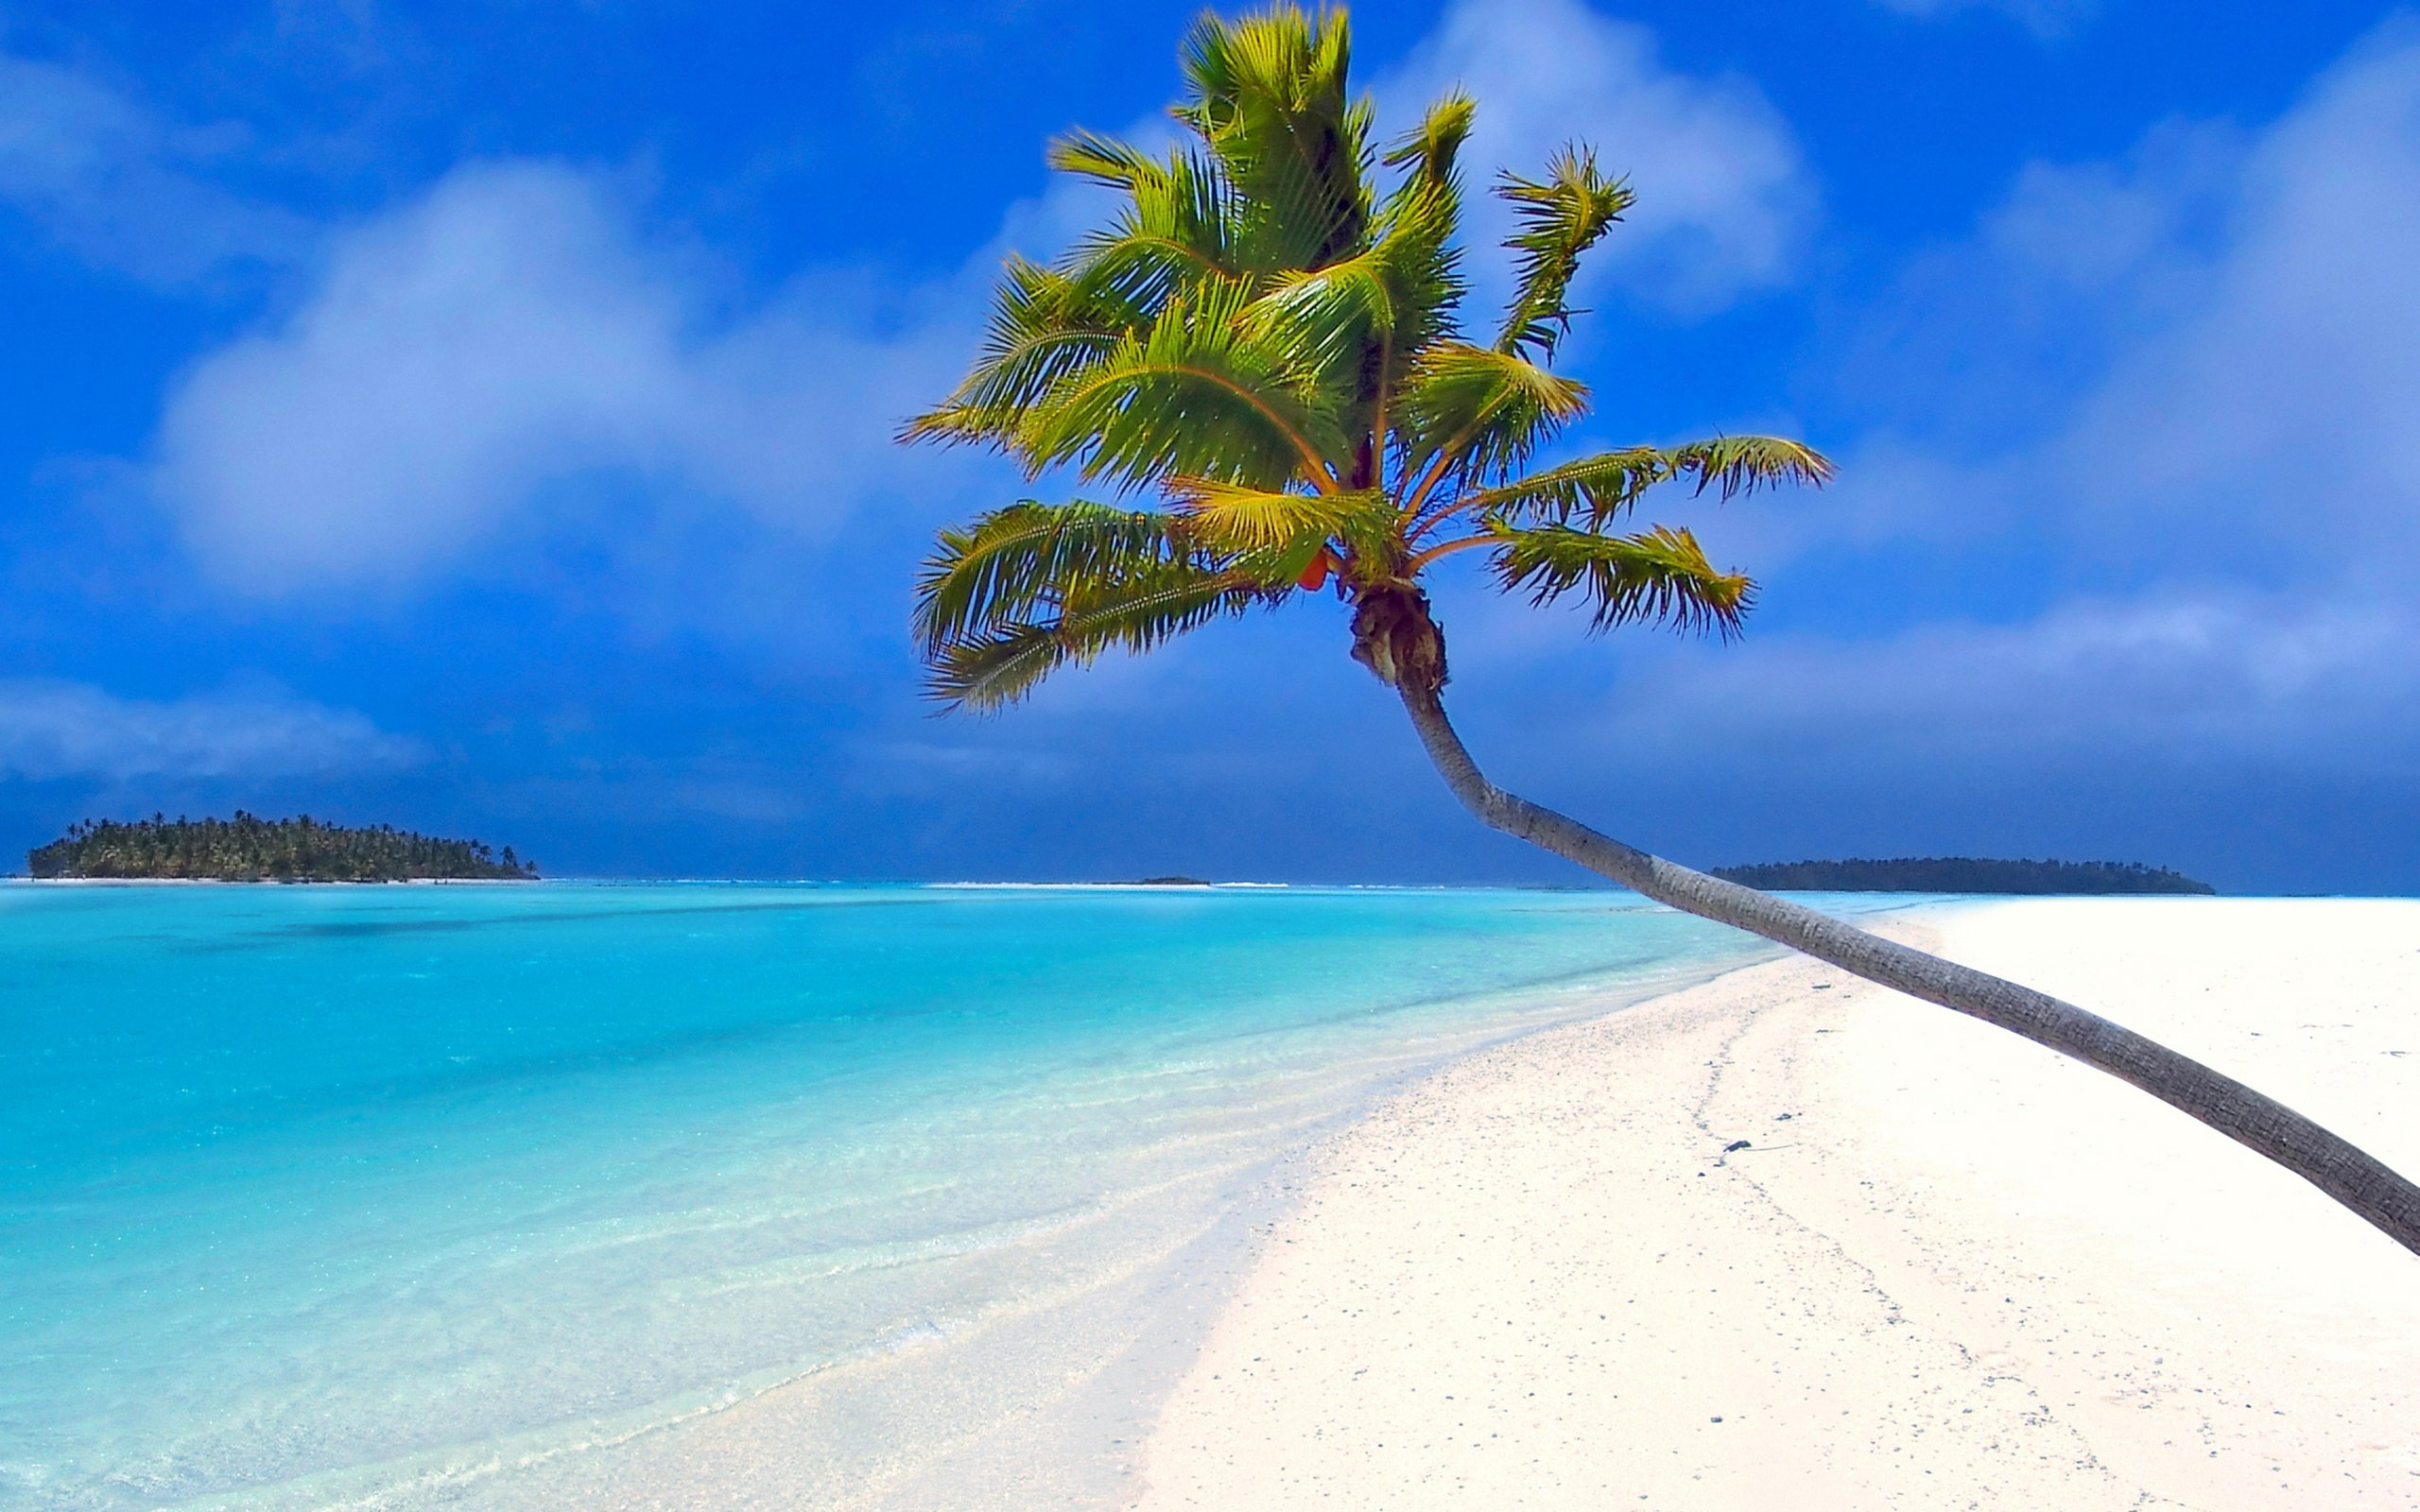 2560x1600 Isolated palm tree desktop PC and Mac wallpaper 2560x1600